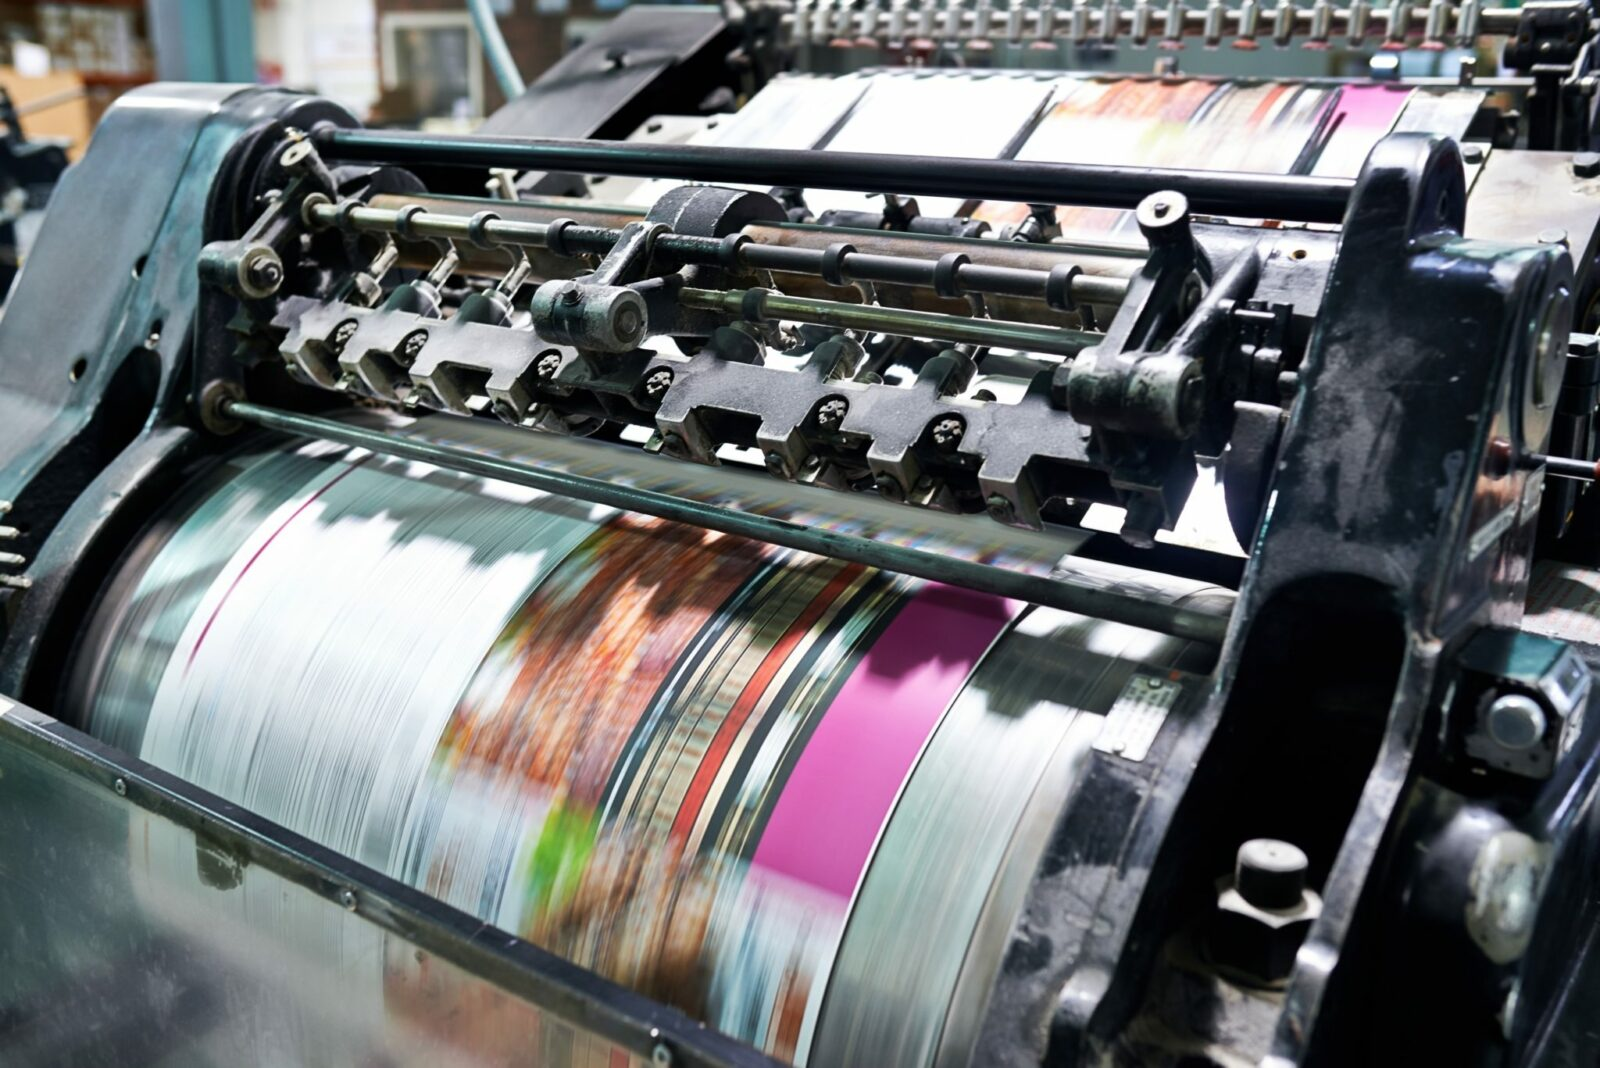 System Implementation, Governance, and Process Project Management for a Print Manufacturer